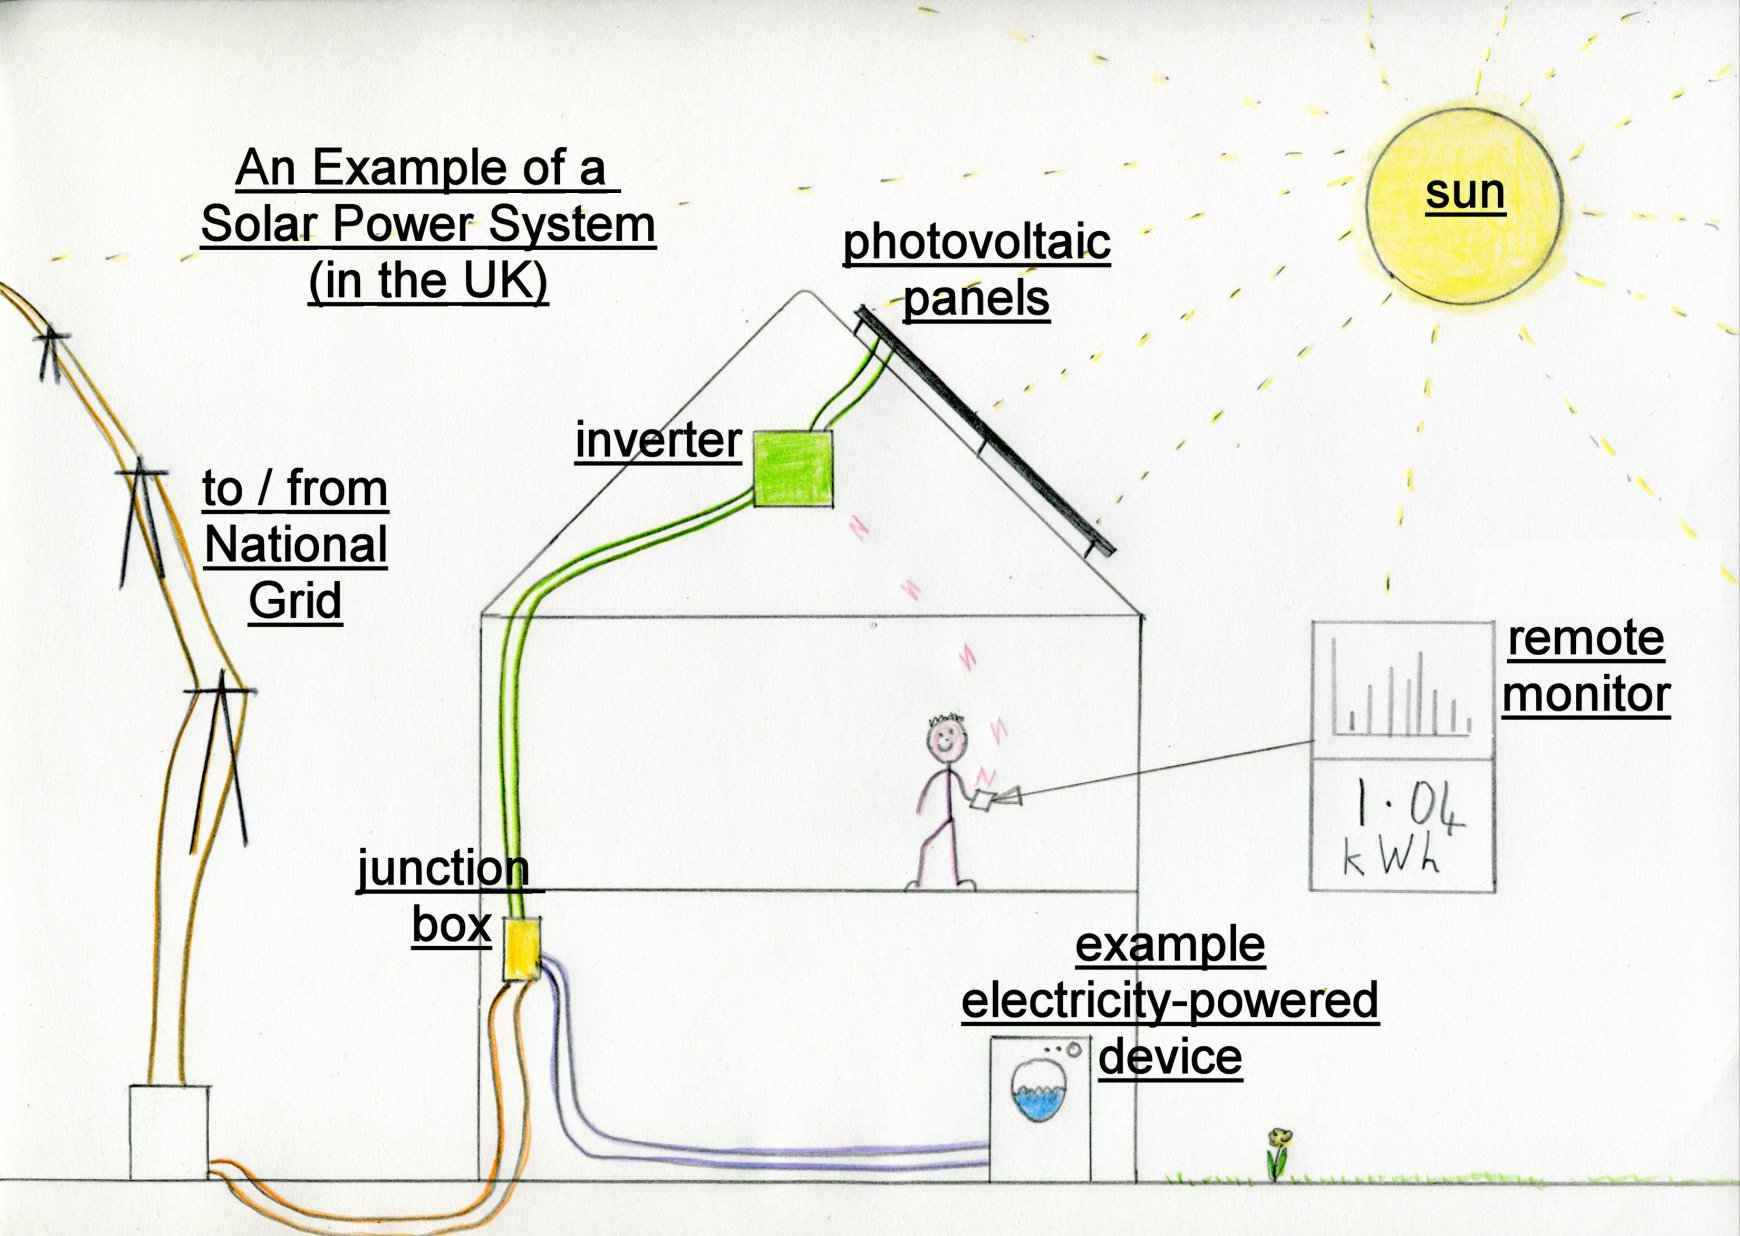 how solar power works diagram human eye anatomy worksheet extended practice ougd603 brief brand